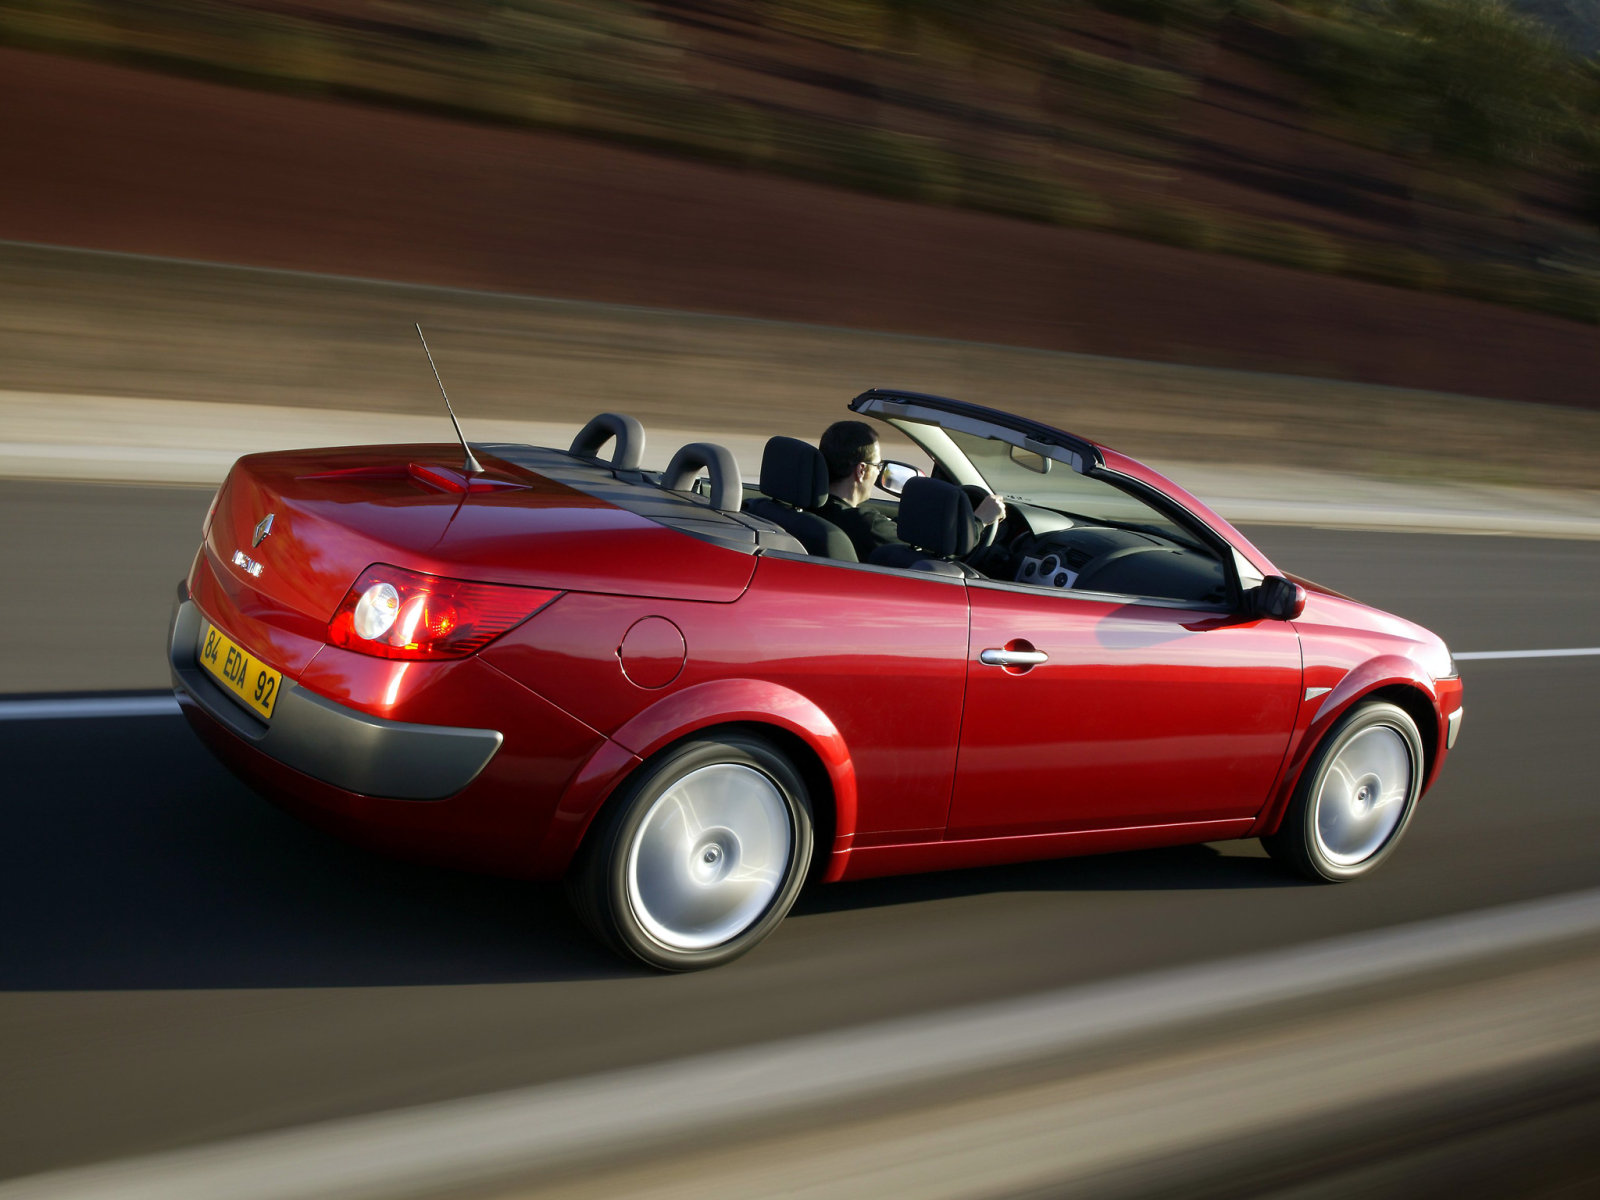 Renault (Рено) Megane Coupe-Cabriolet 2003-2006 г.